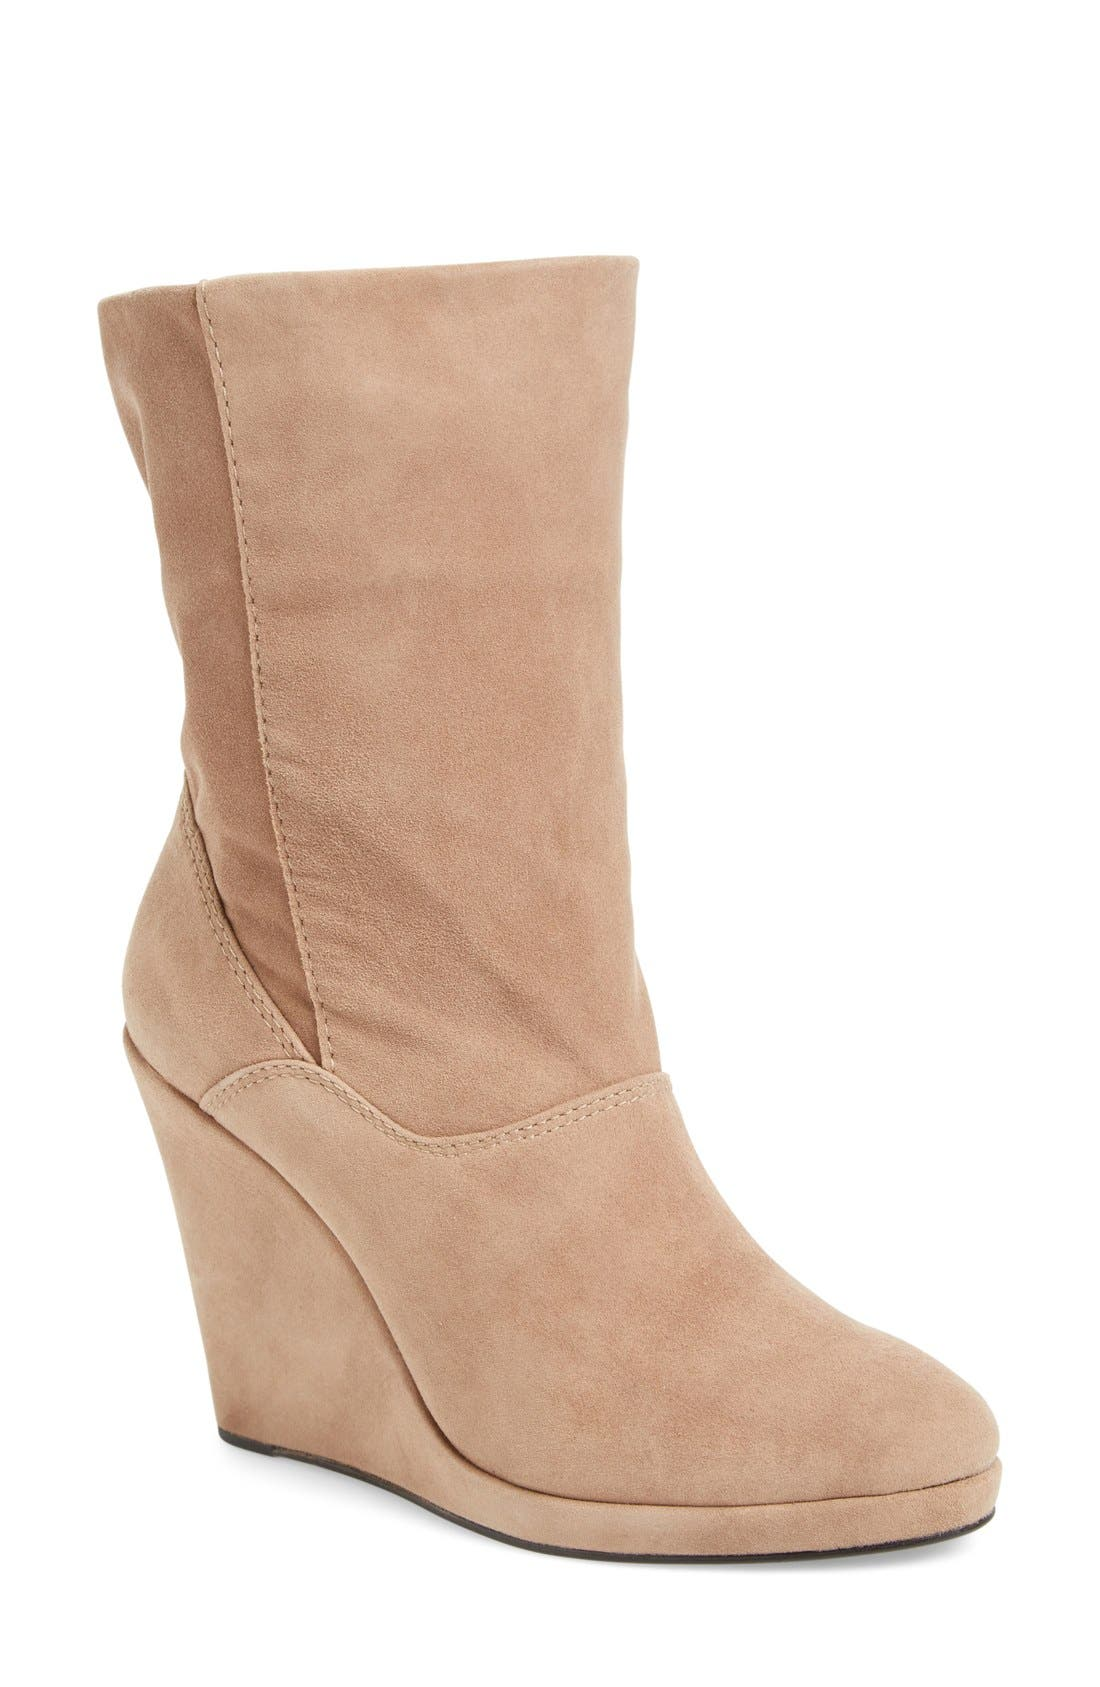 M4D3 Melanie Wedge Boot,                         Main,                         color, Taupe Leather